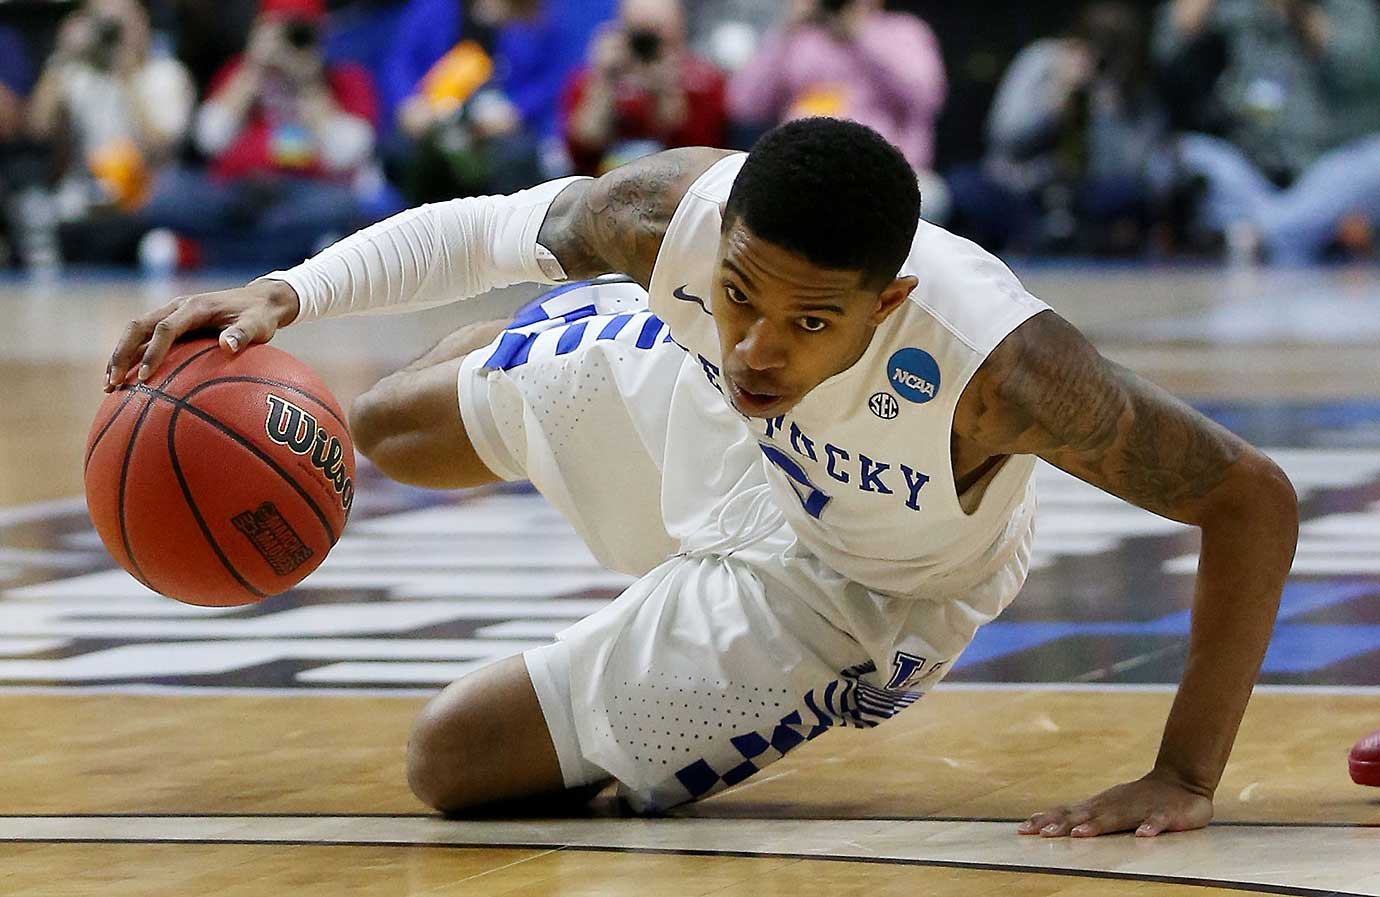 Tyler Ulis had a team-high 27 points for Kentucky, which suffered its earliest tournament exit since 2008.